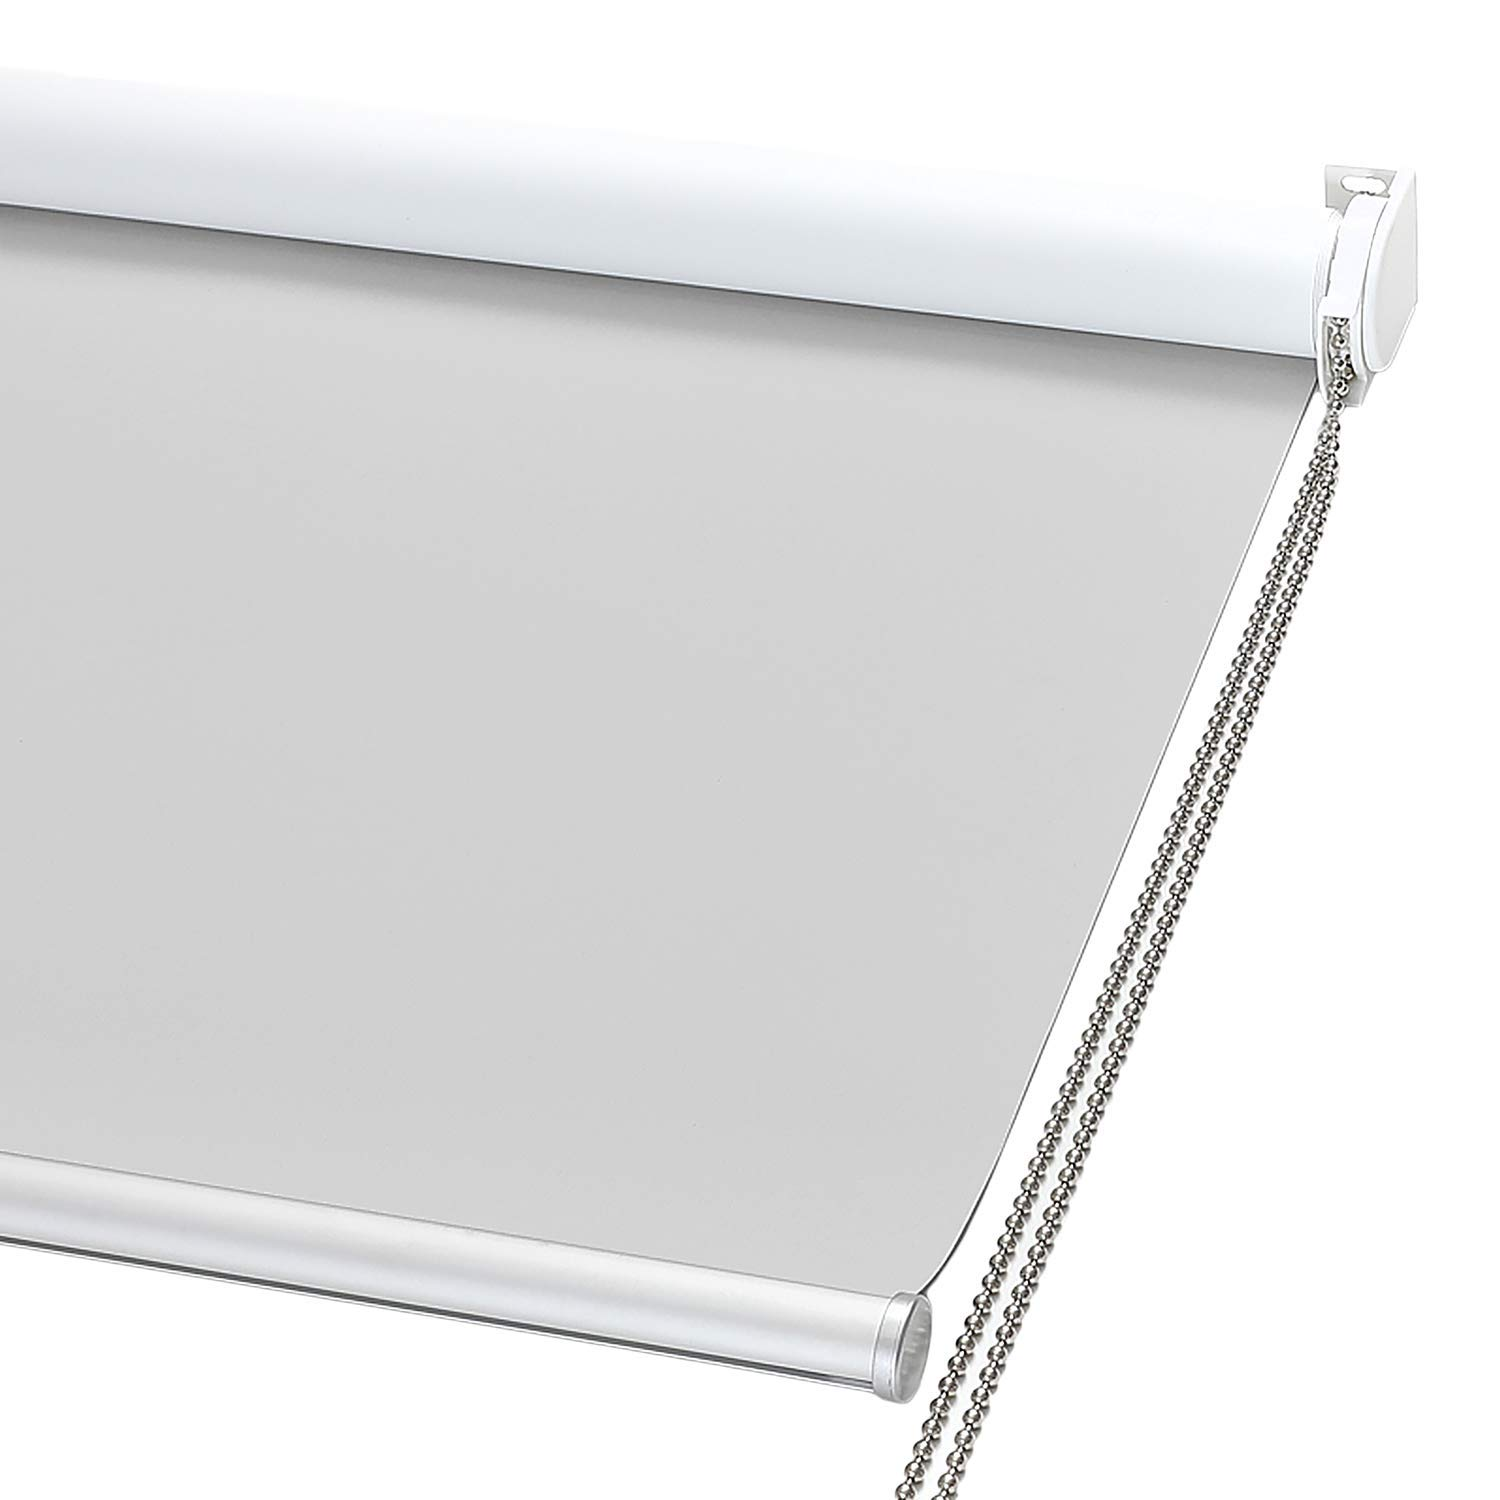 ChrisDowa 100% Blackout Roller Solar Shade with Thermal Insulated